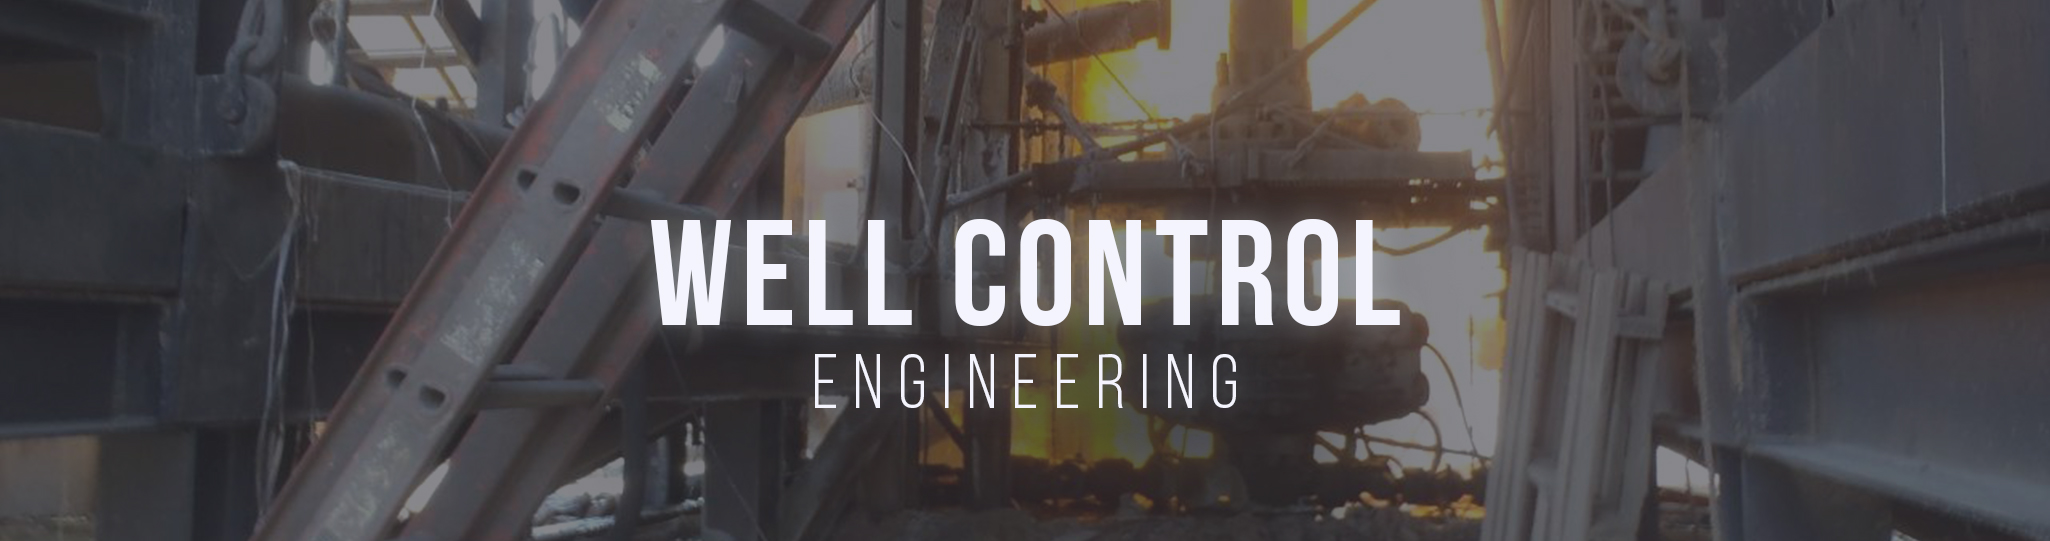 Well Control Engineering